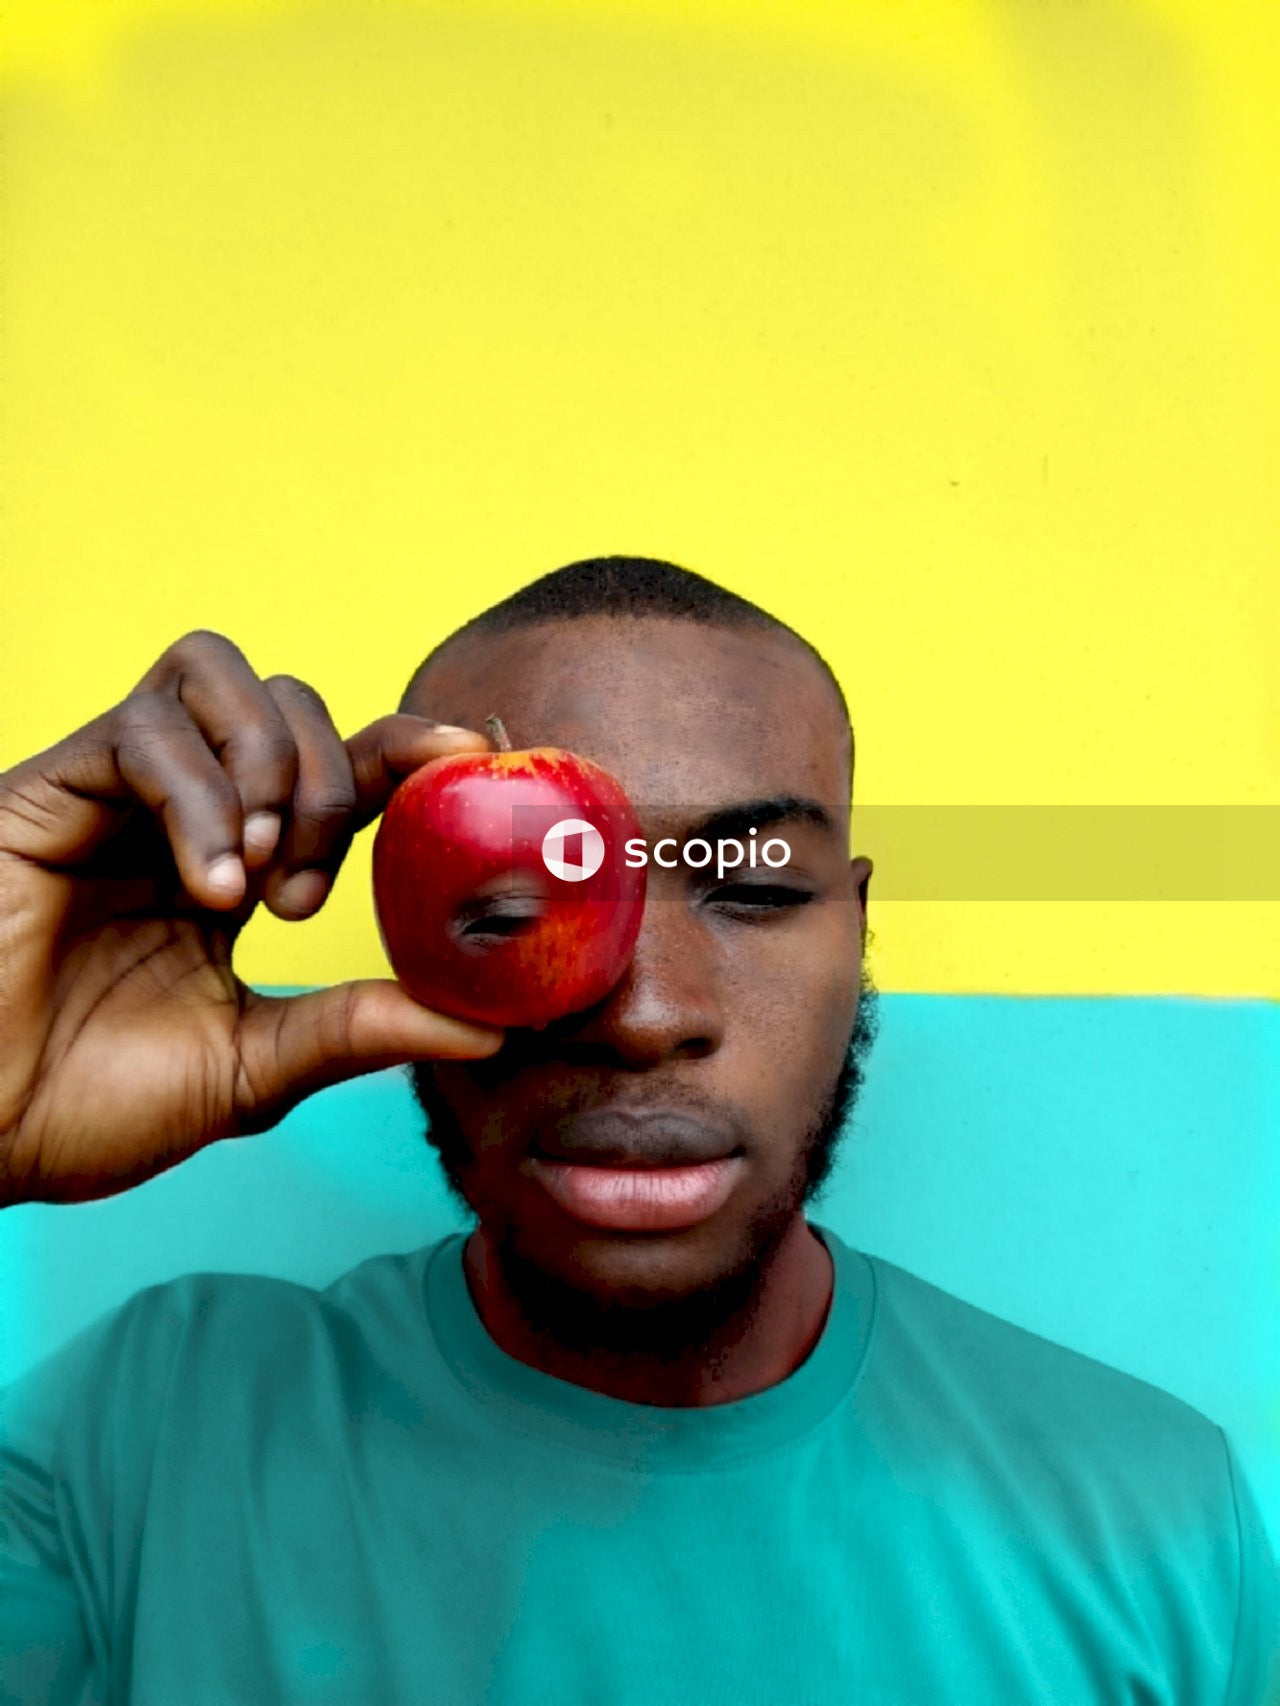 Man holding red apple fruit